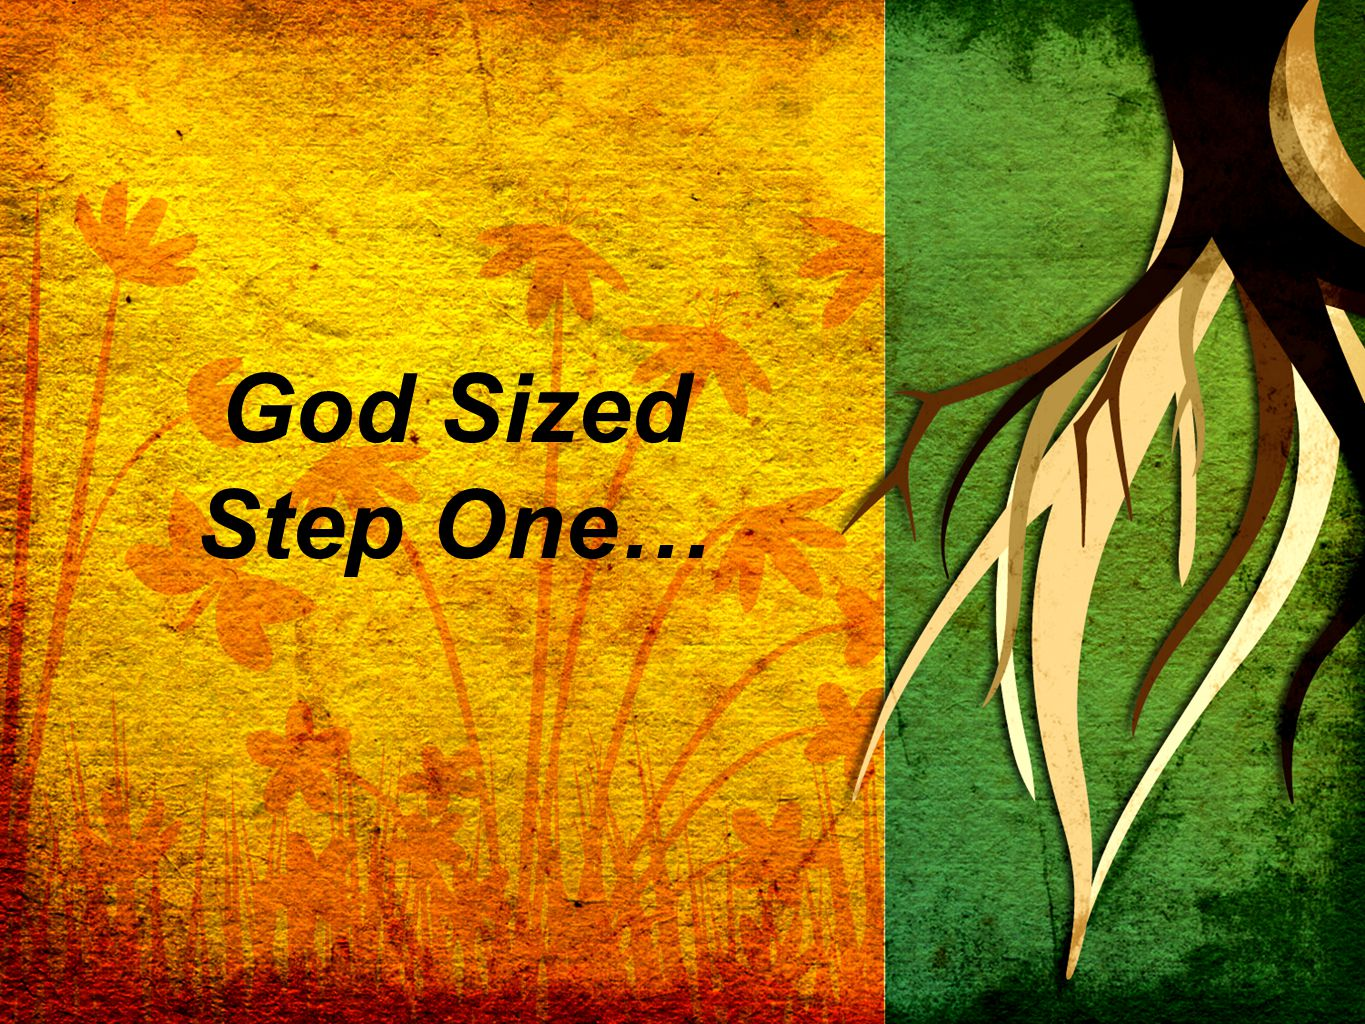 God Sized Step One…